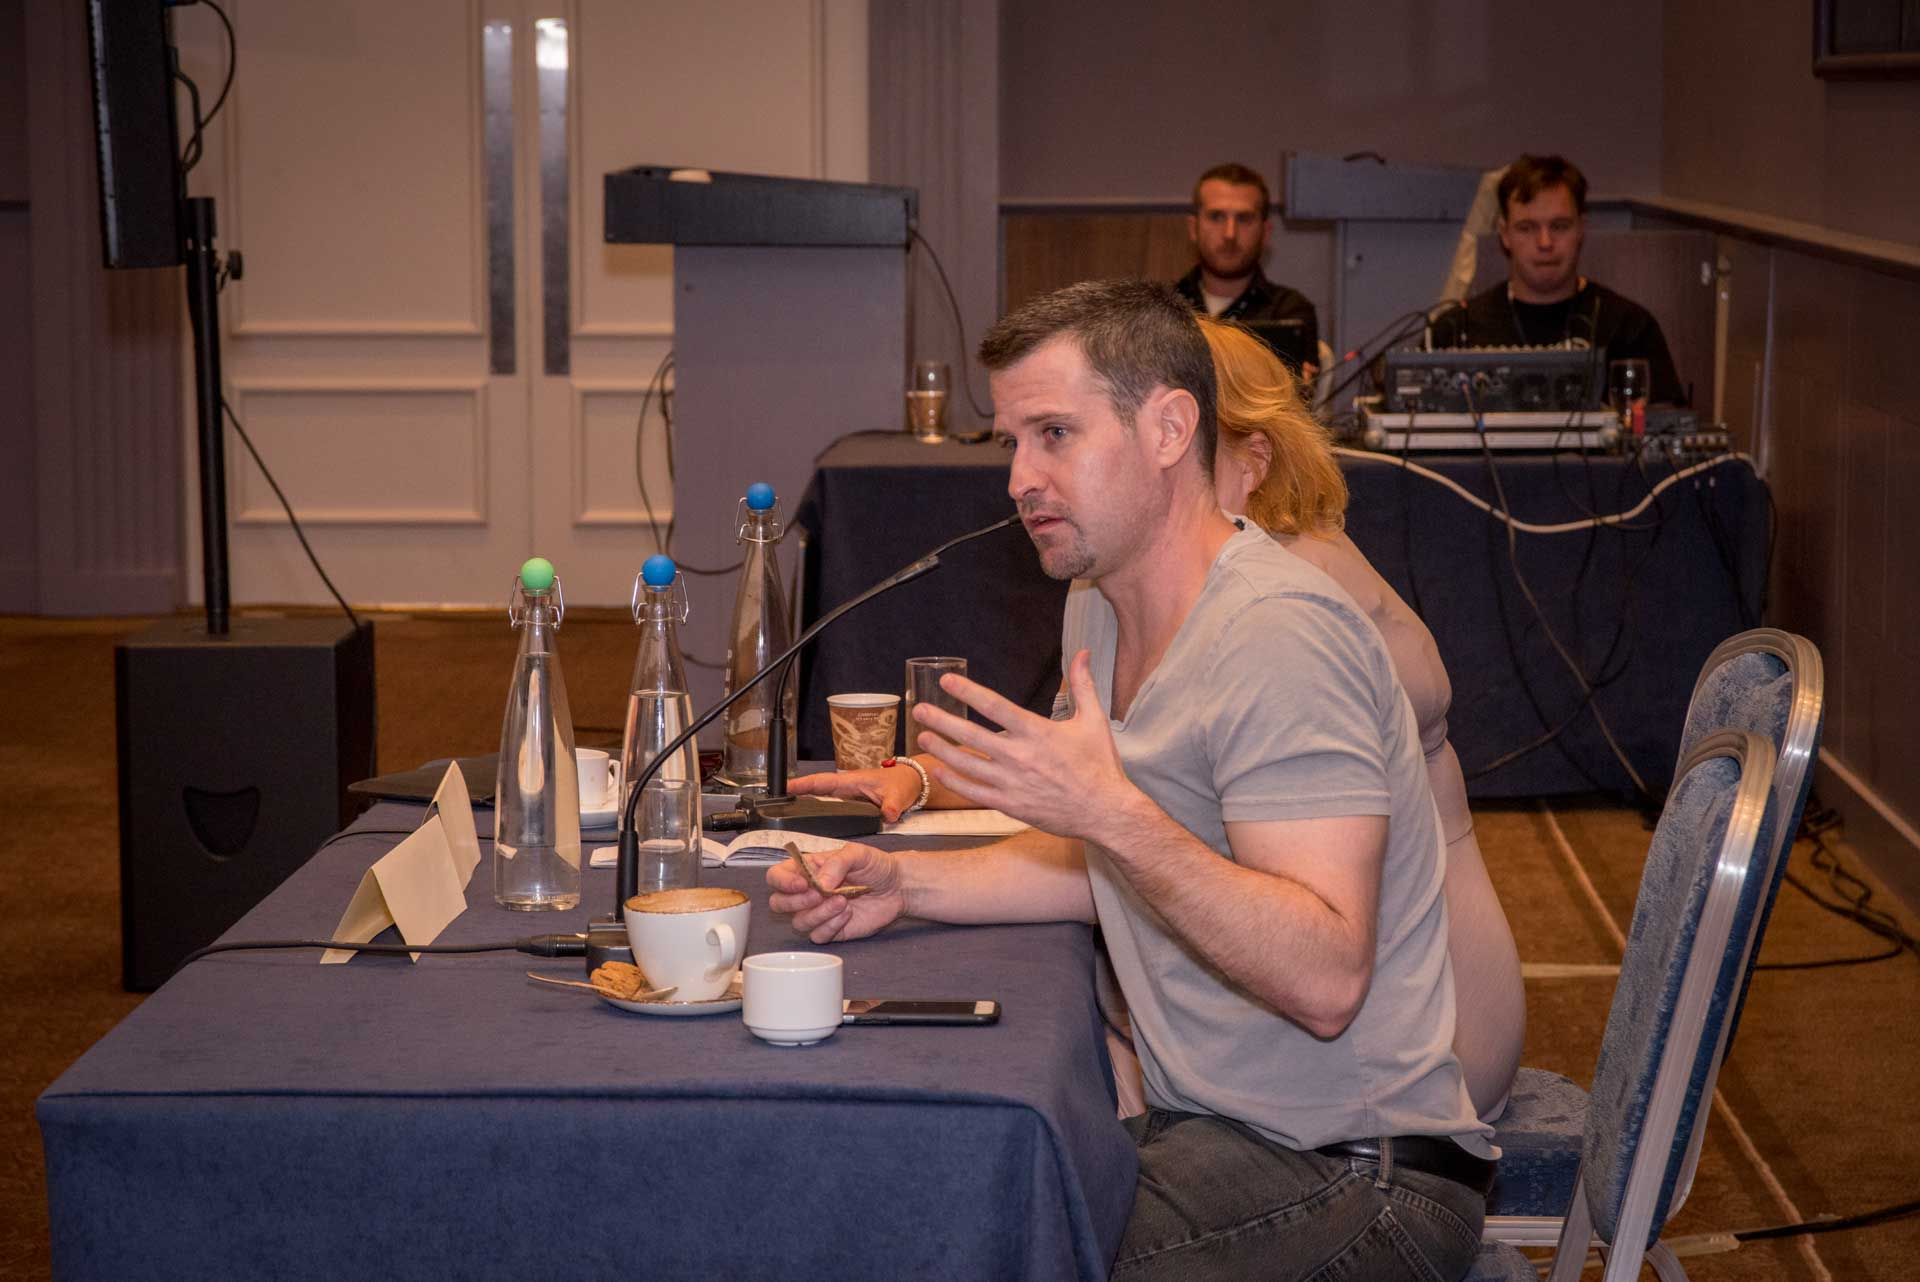 Writer/Director Richard Kelly discusses screenwriting at Galway Film Fleadh.